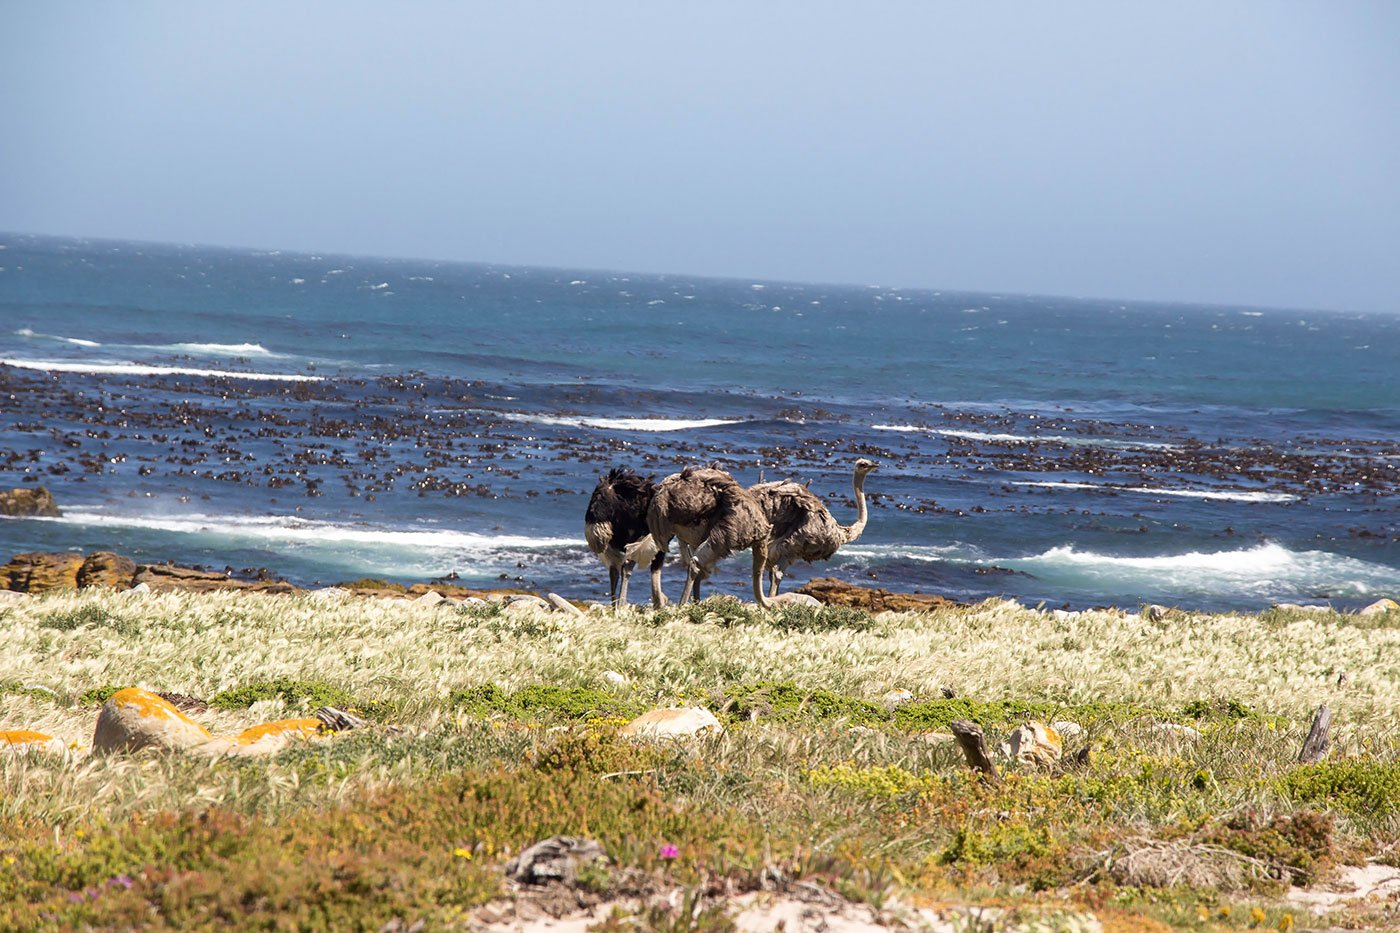 Wine and Wildlife: 3 Day Trips From Cape Town - There's wildlife everywhere, even ostriches on the side of the road.